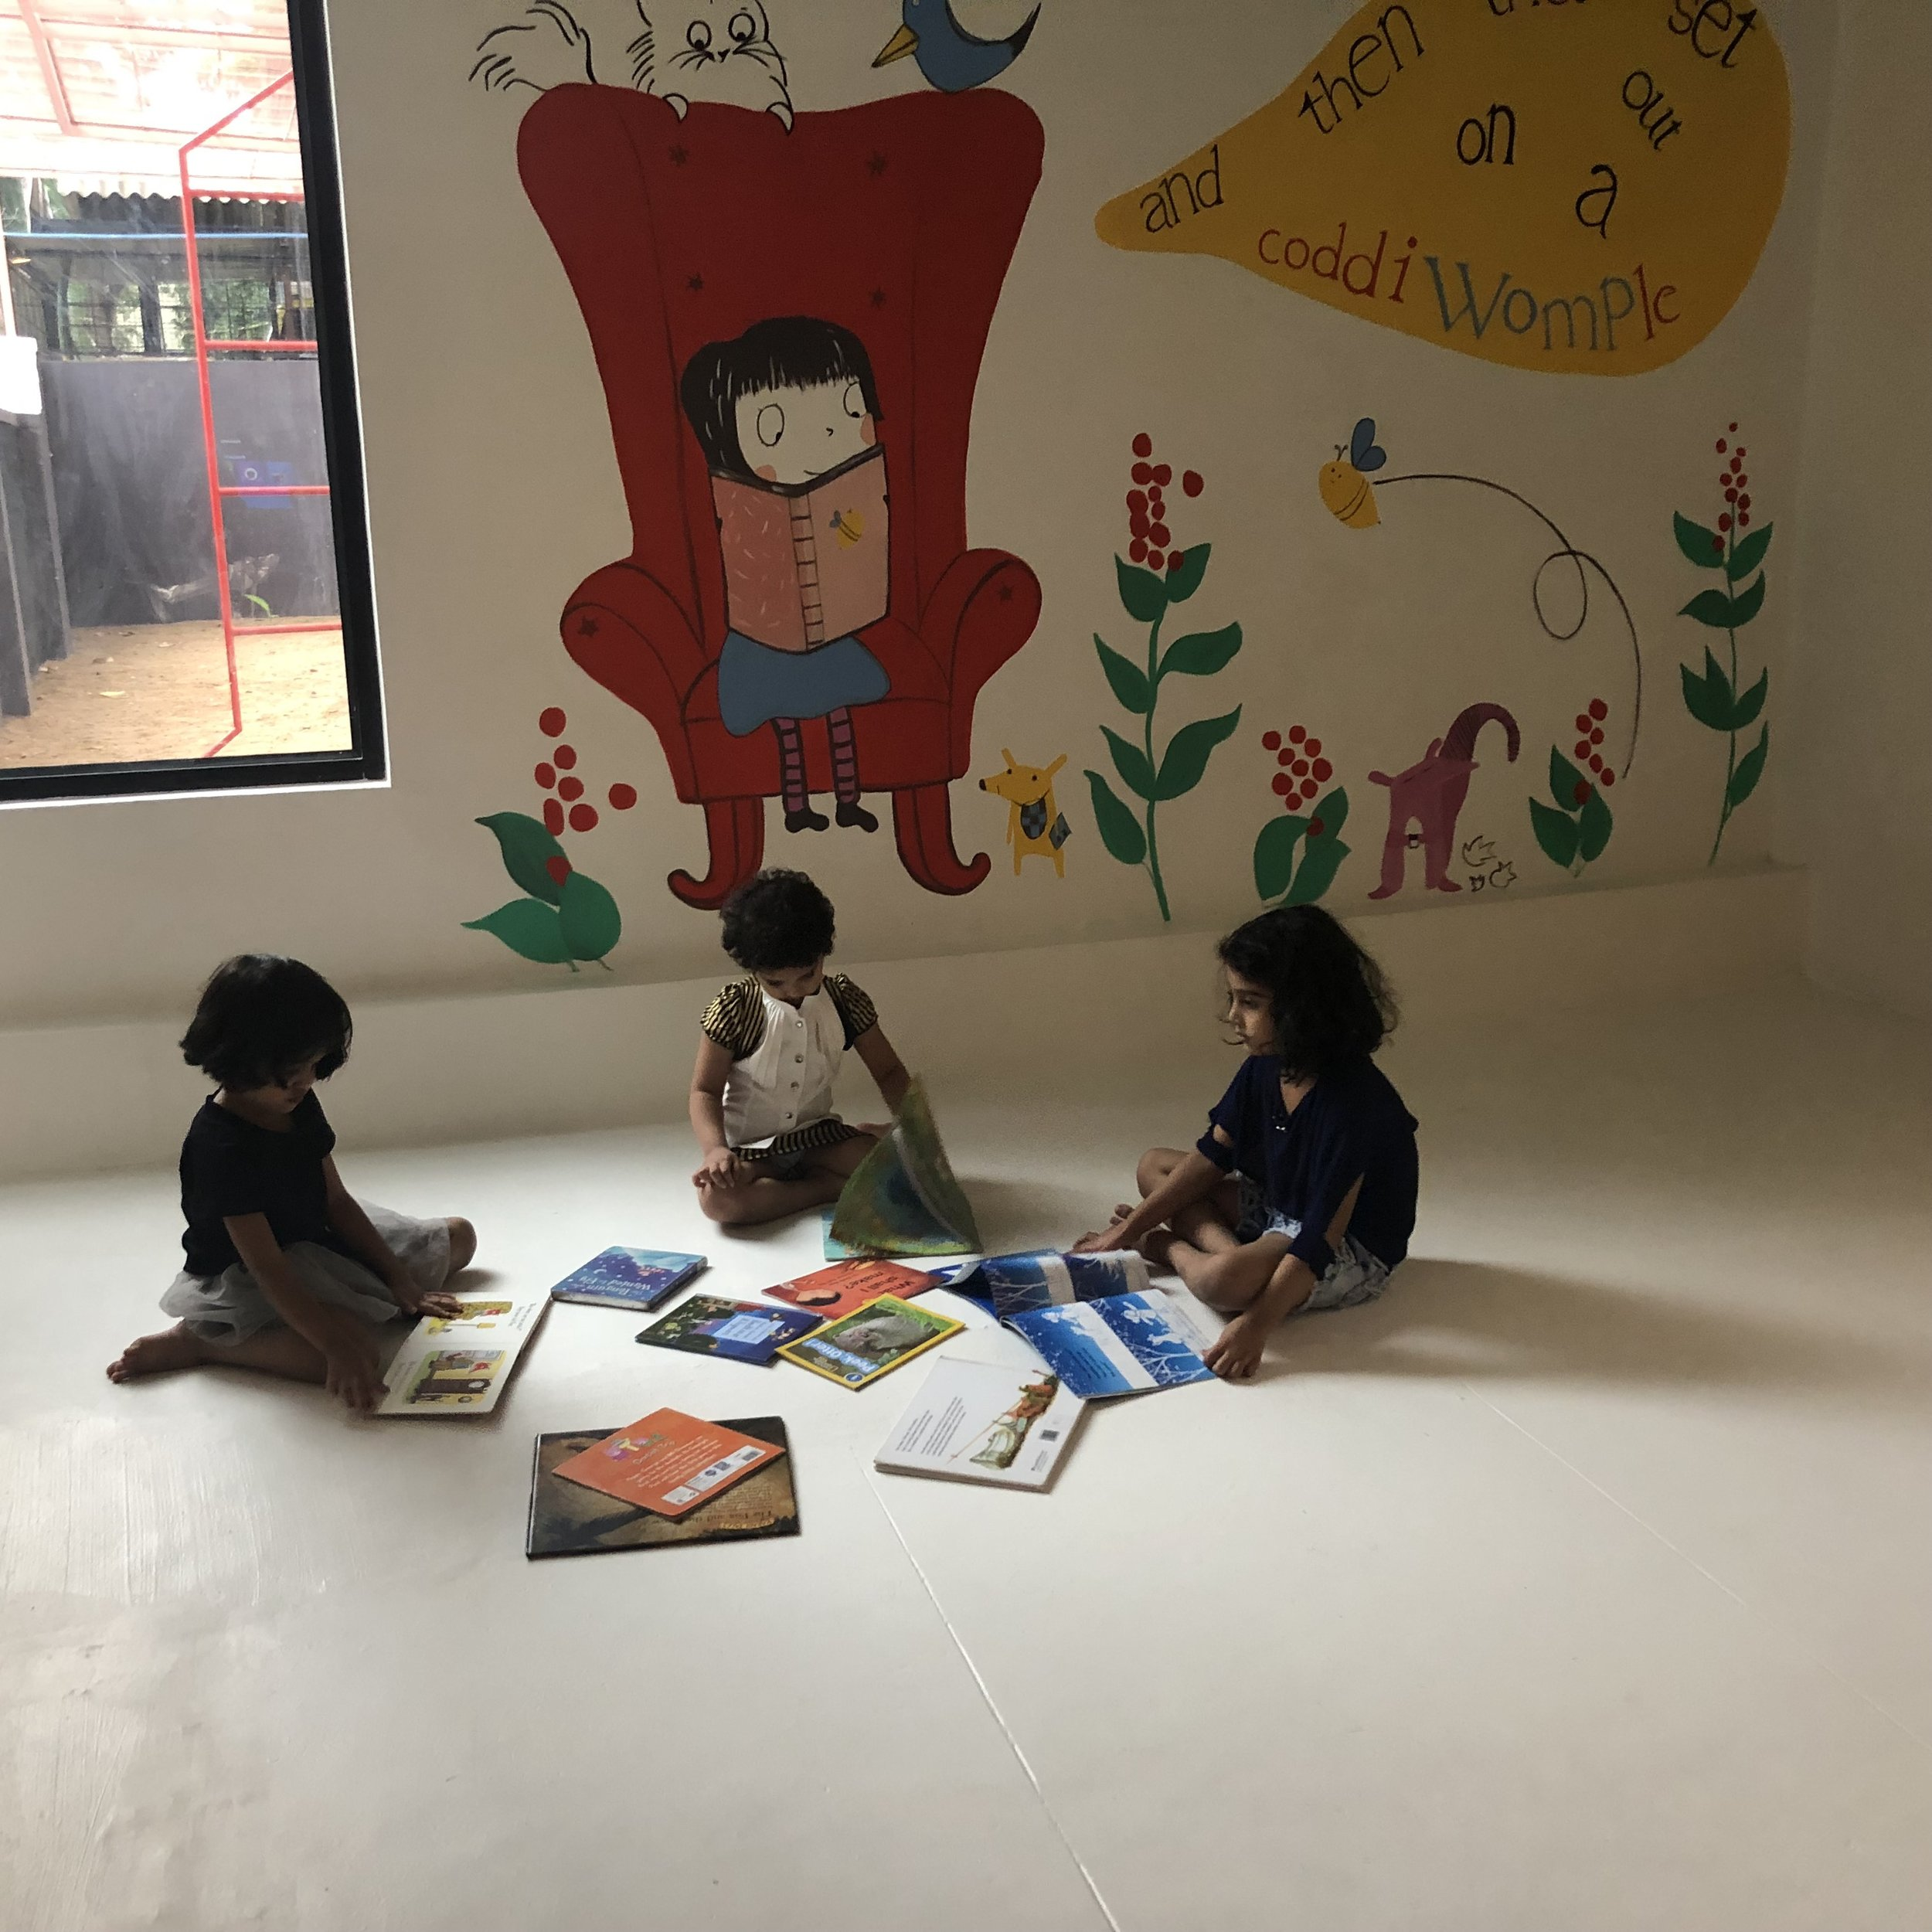 The Indoor Environment - Designed to allow and transform the room into activity zones and learning areas. The activity zones contain a variety of manipulative materials and equipment that are visually displayed or organised to encourage exploration and allow the children to use them in creative ways.